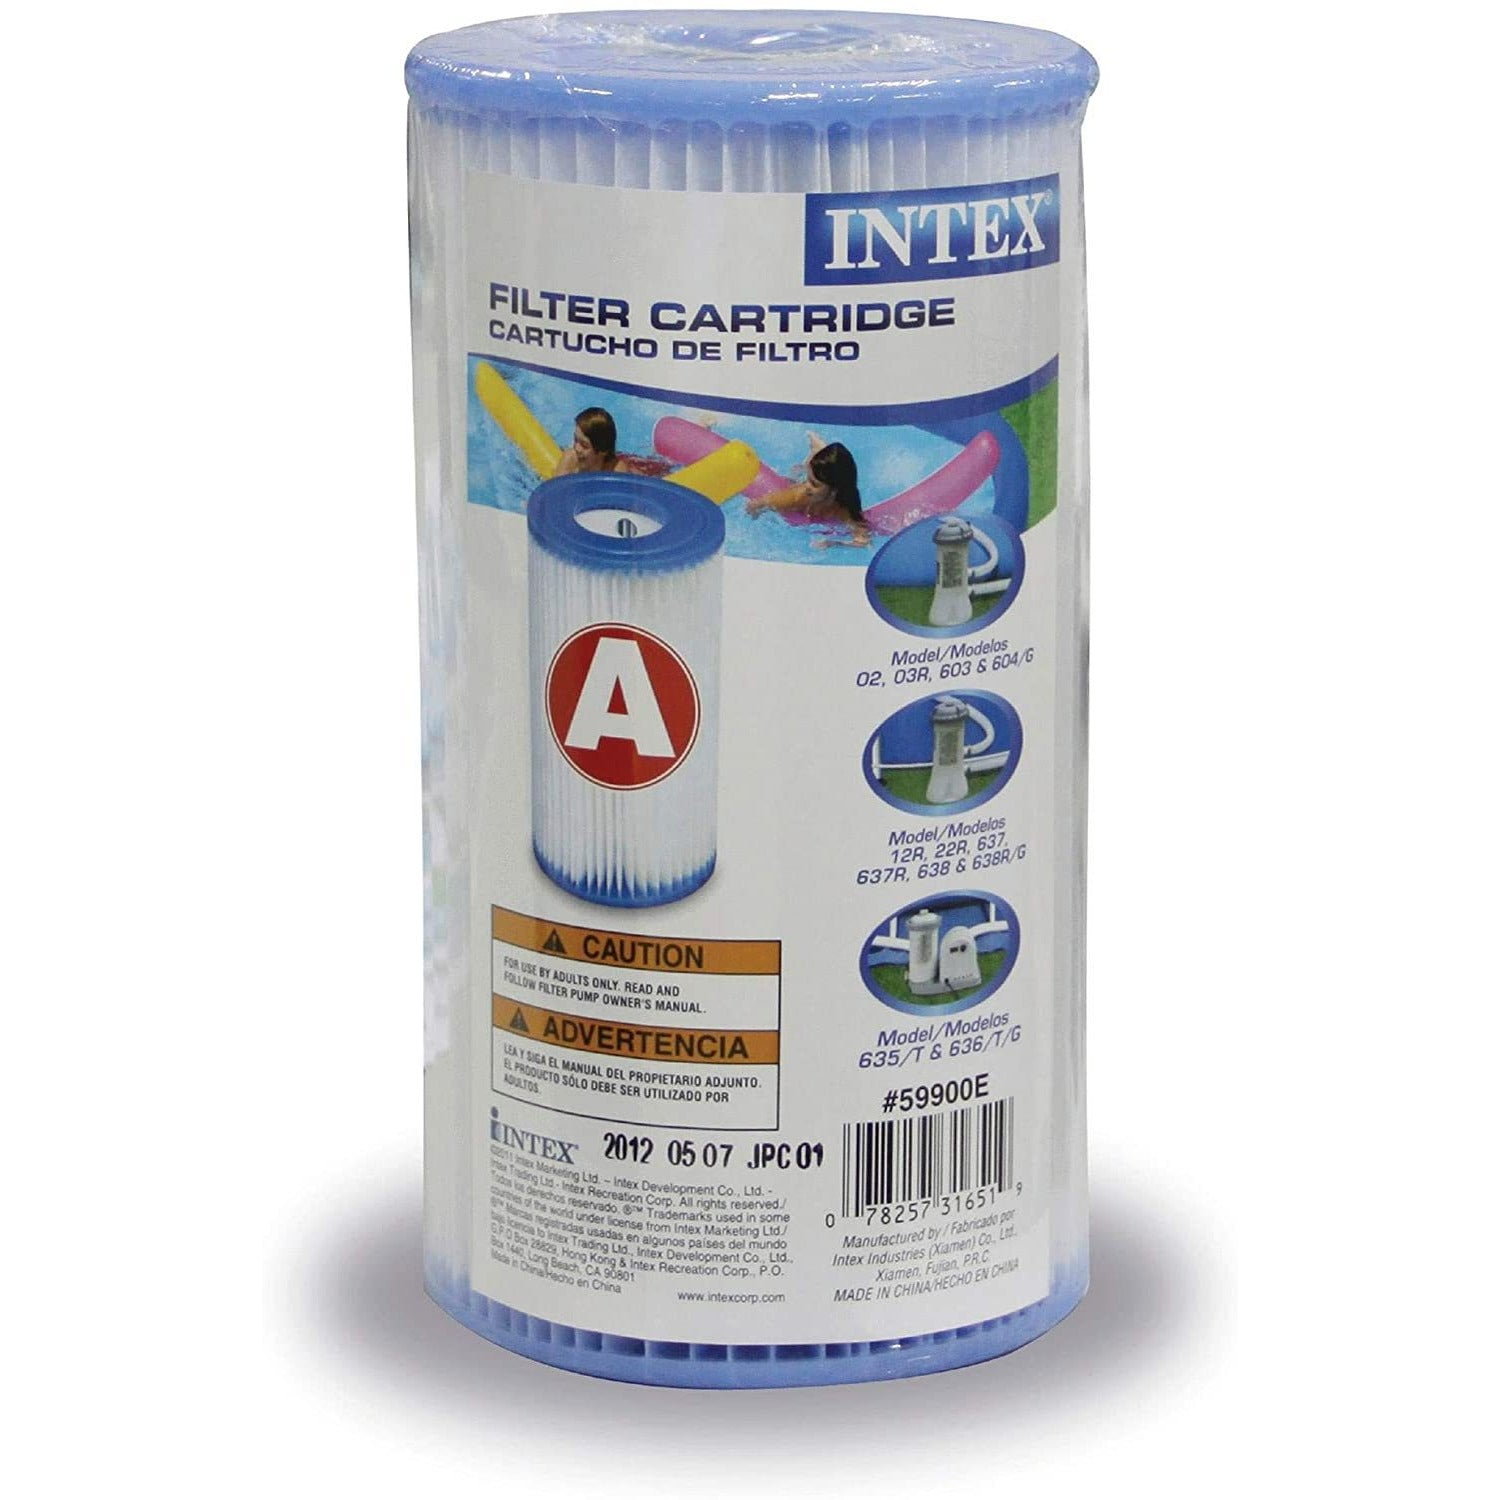 Intex Filter Cartridge Type A (59900E) - Replacement Type A and C For Easy Set Pool Filters